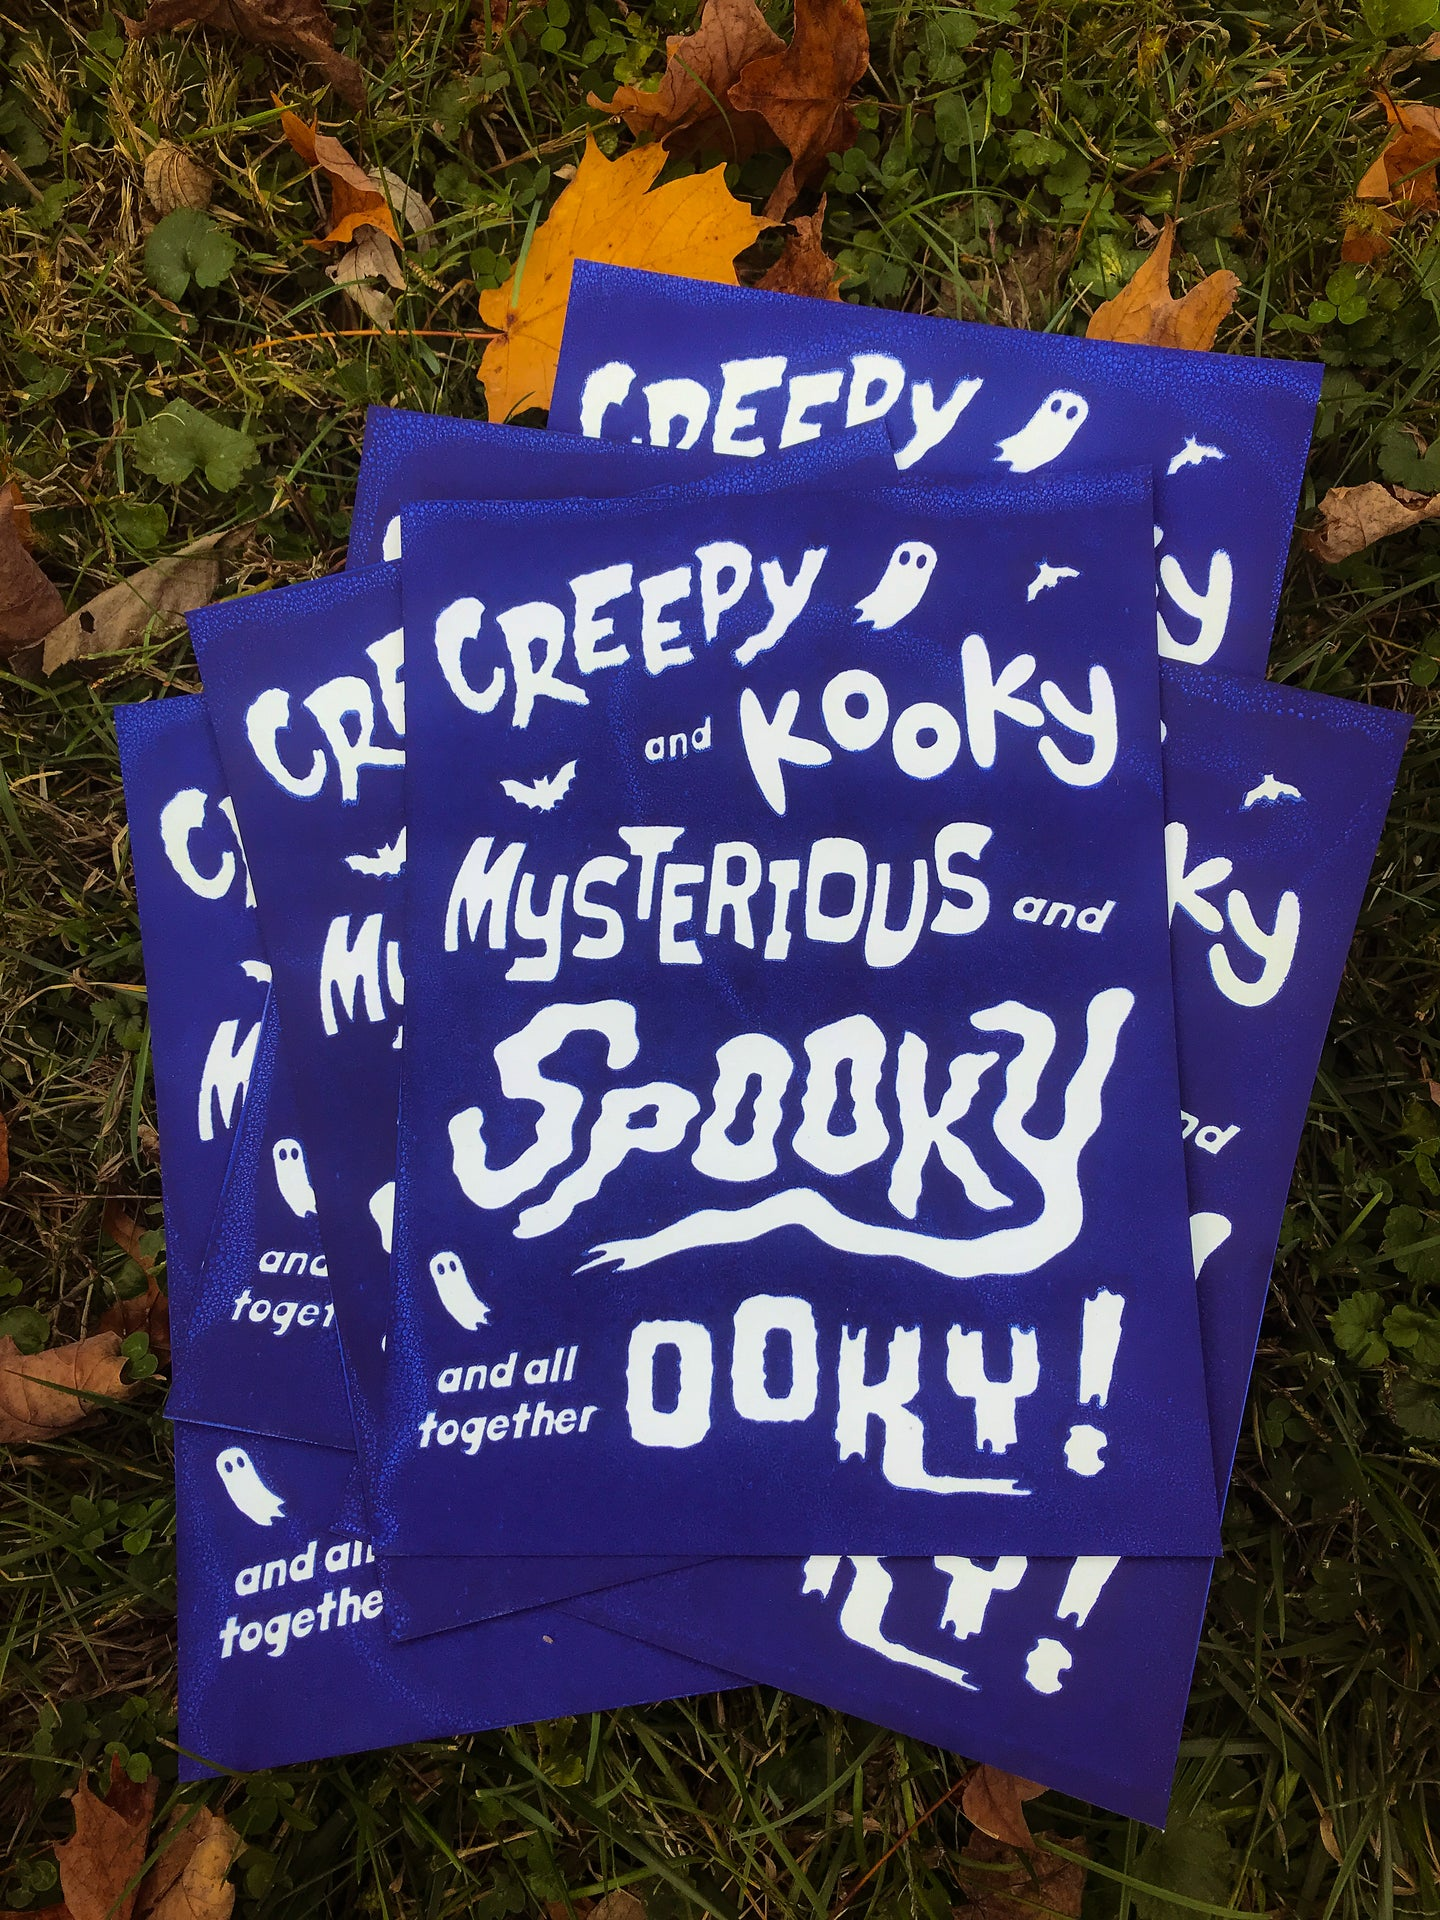 Creepy Kooky Mysterious Spooky and Ooky Glow-in-the-Dark Print!